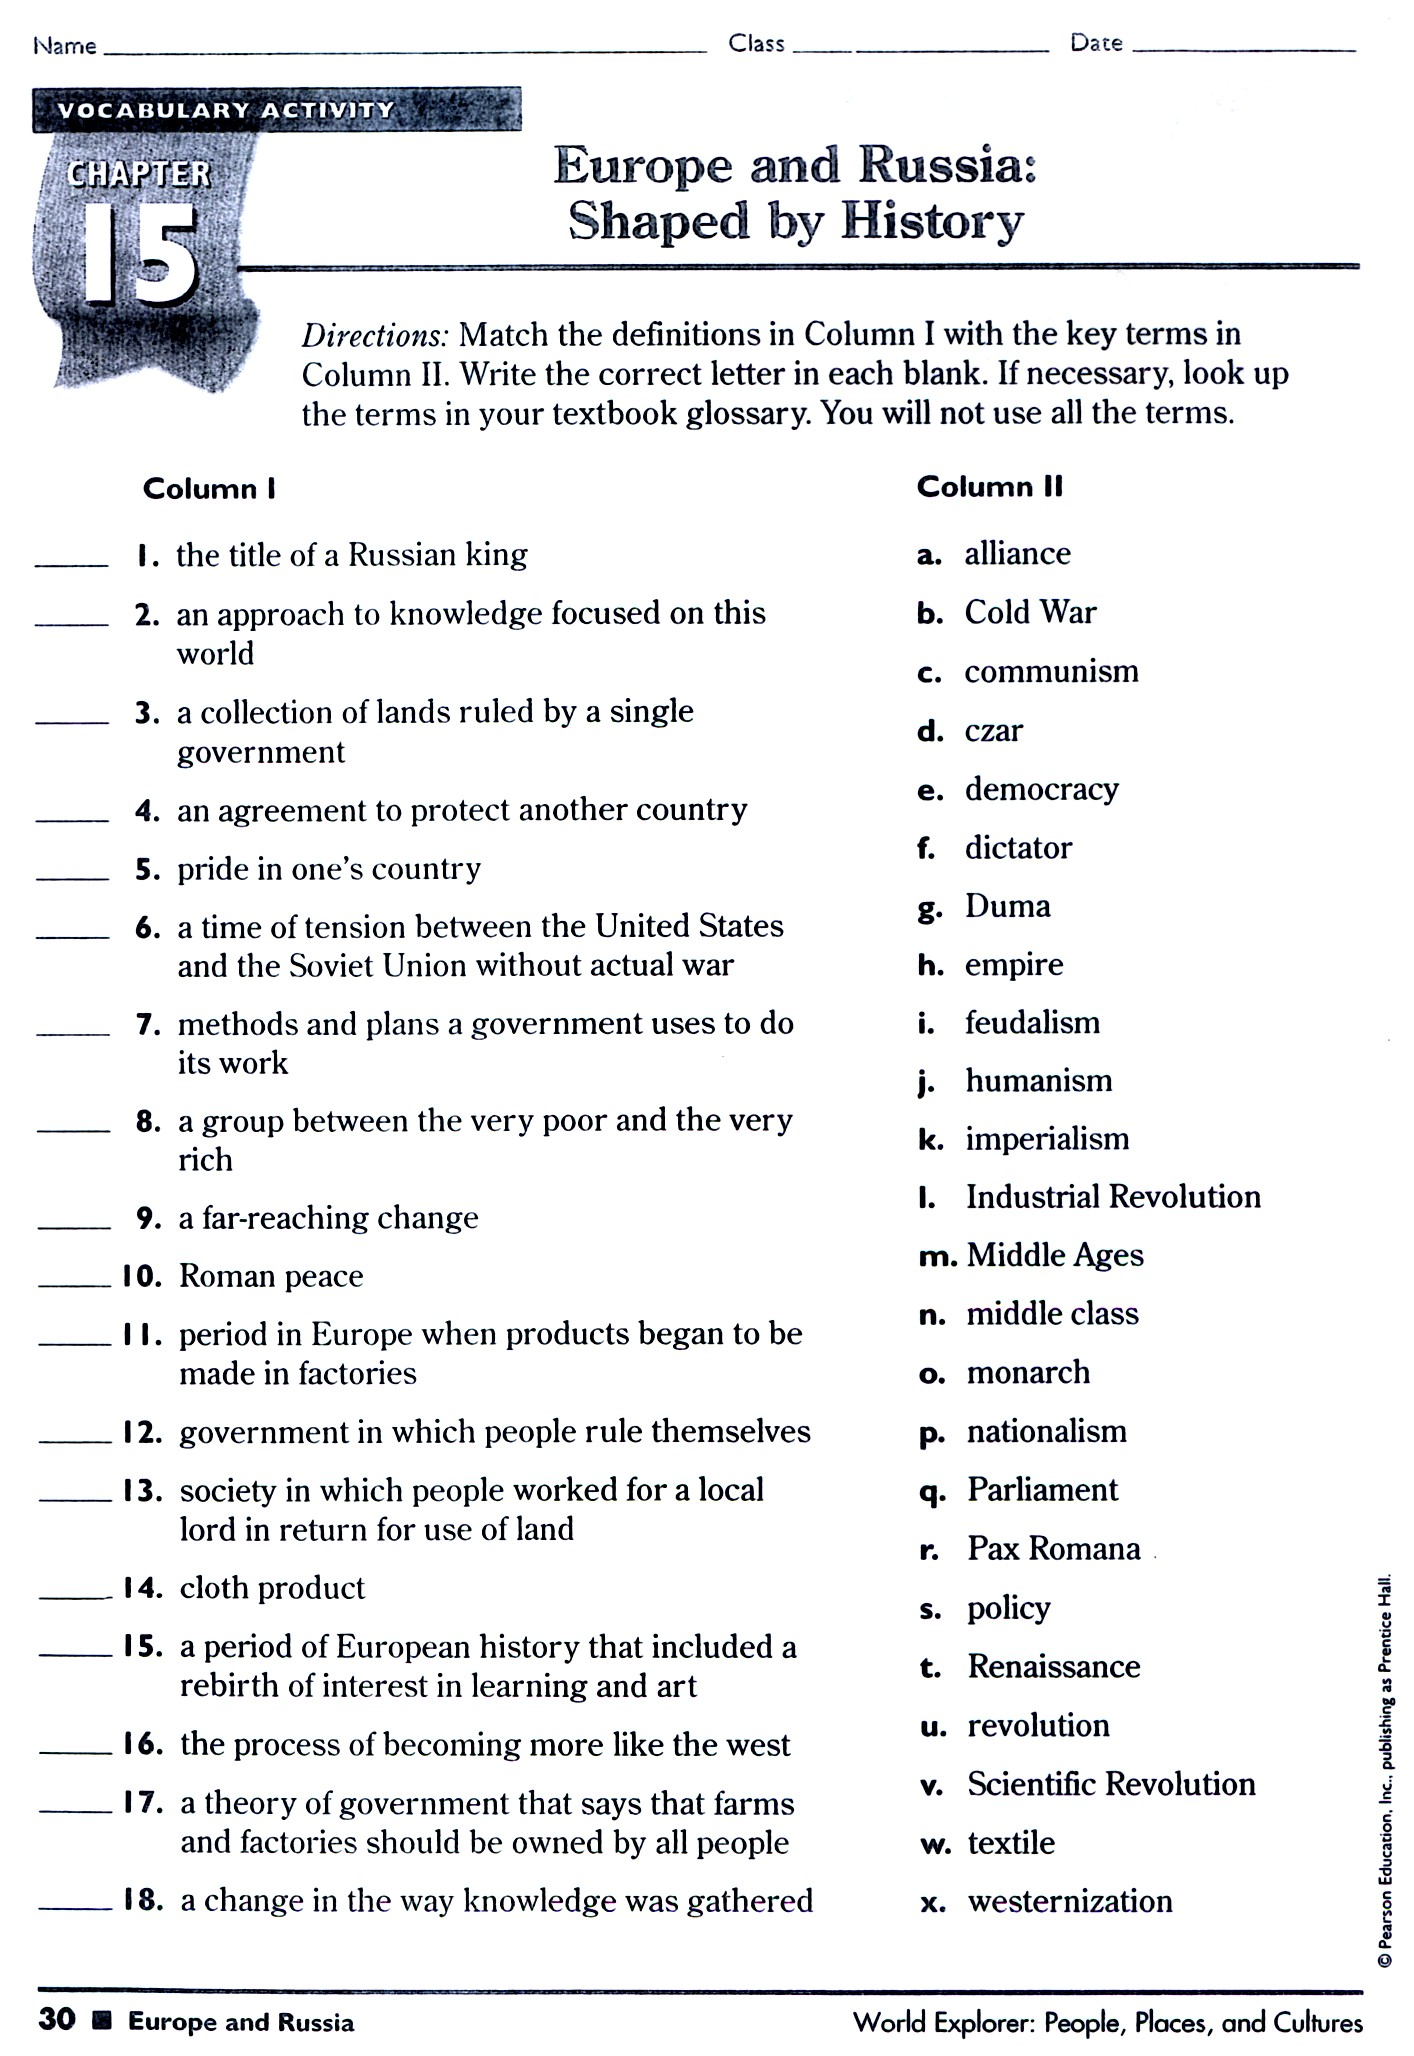 Weather Worksheet New 54 Weather And Climate Worksheets For 5th Grade